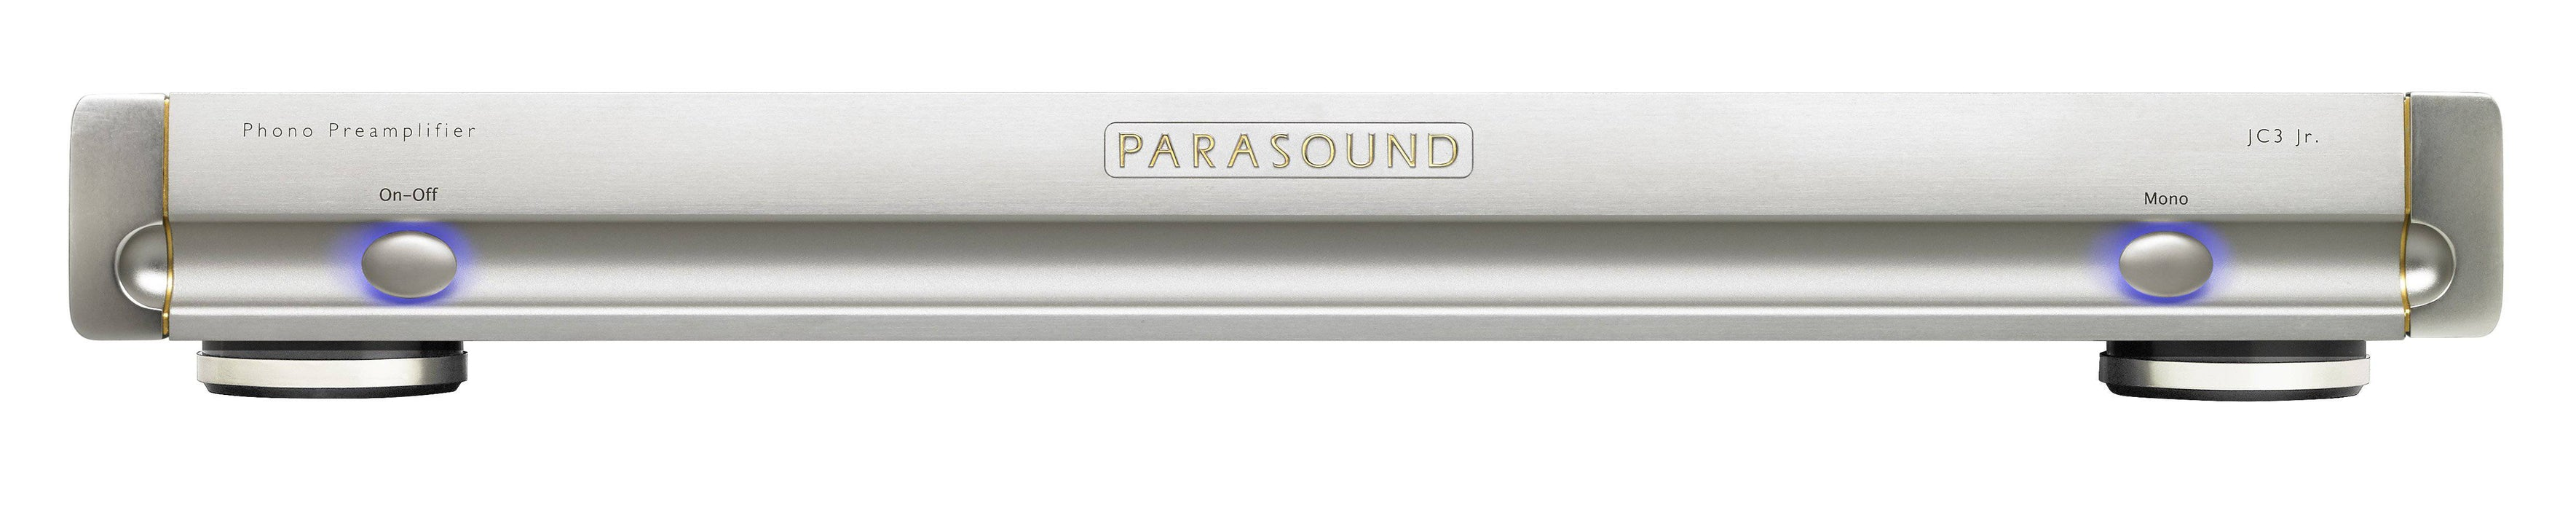 Parasound JC3 Jr Halo - Audiophile Phono Preamplifier - The Audio Company